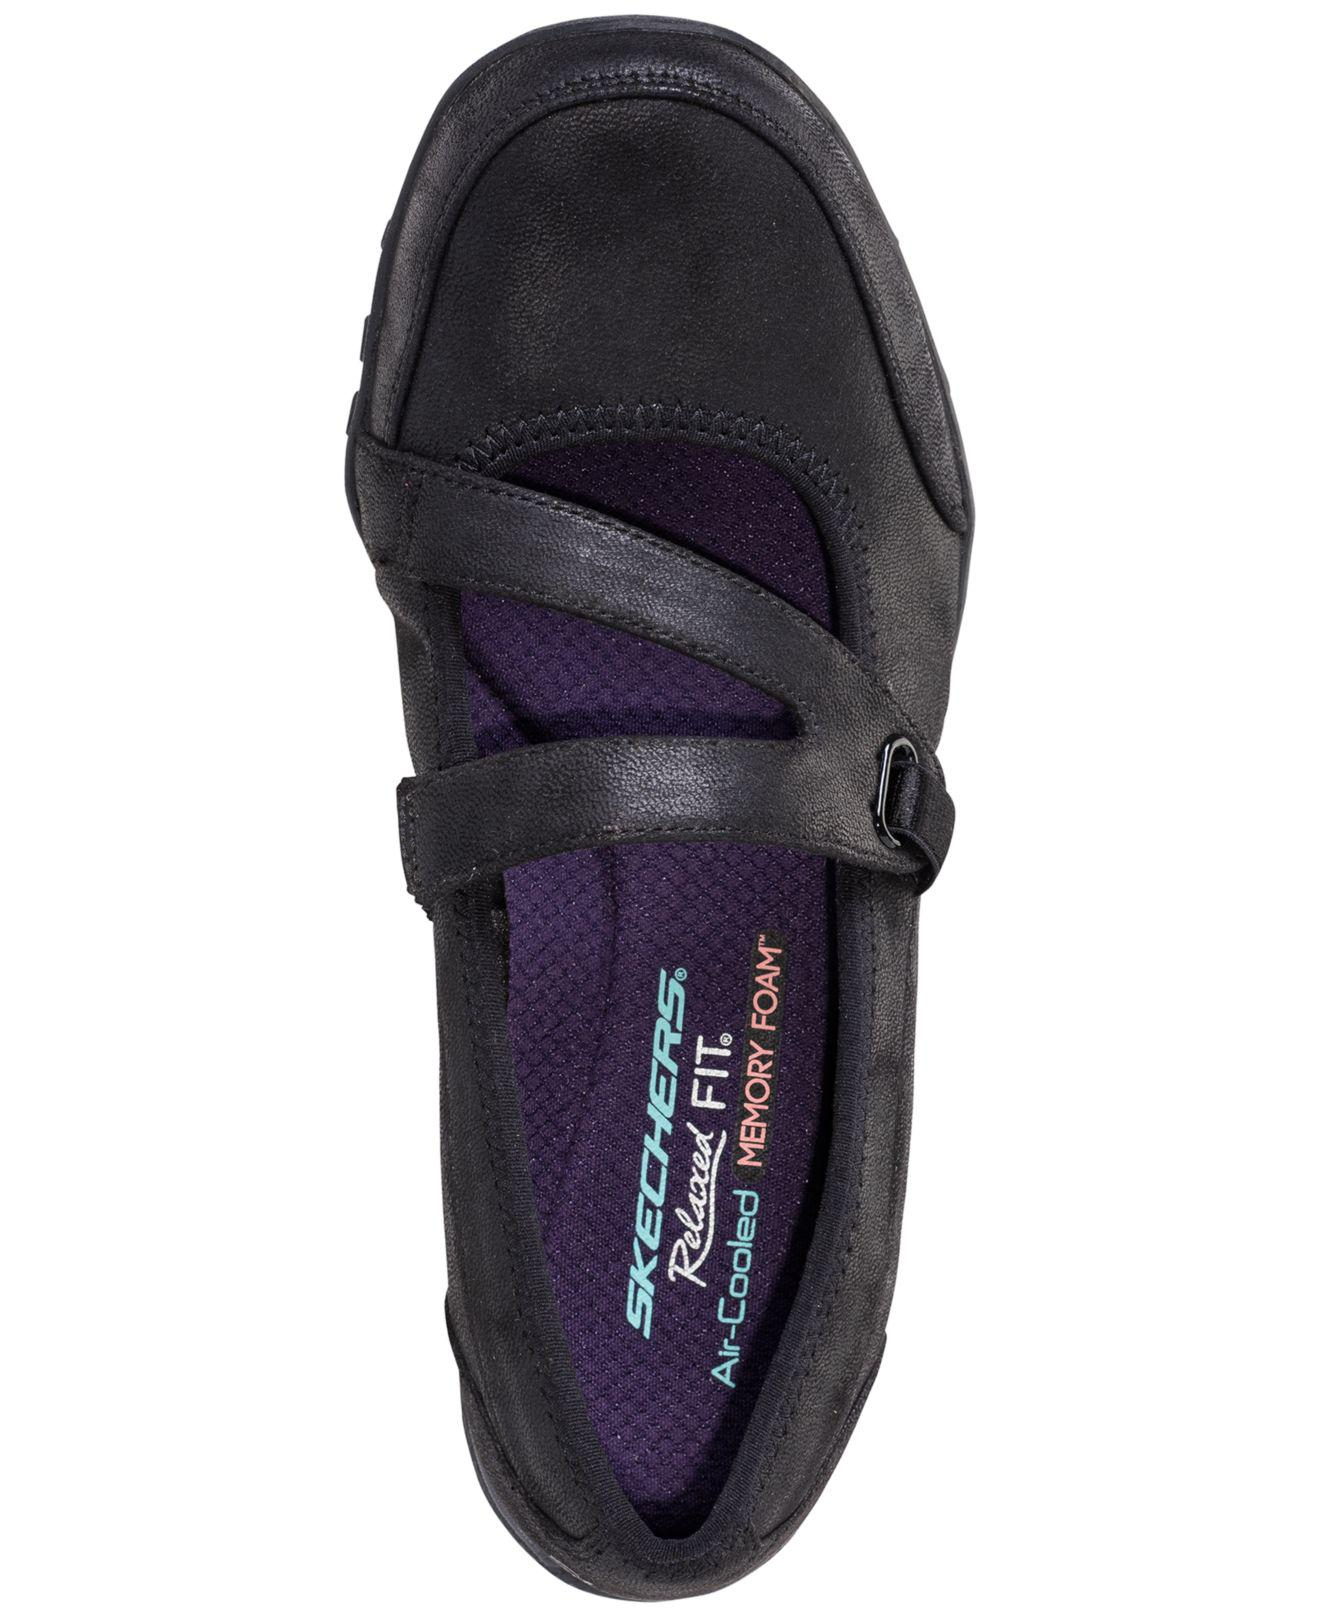 Skechers Leather Women's Relaxed Fit